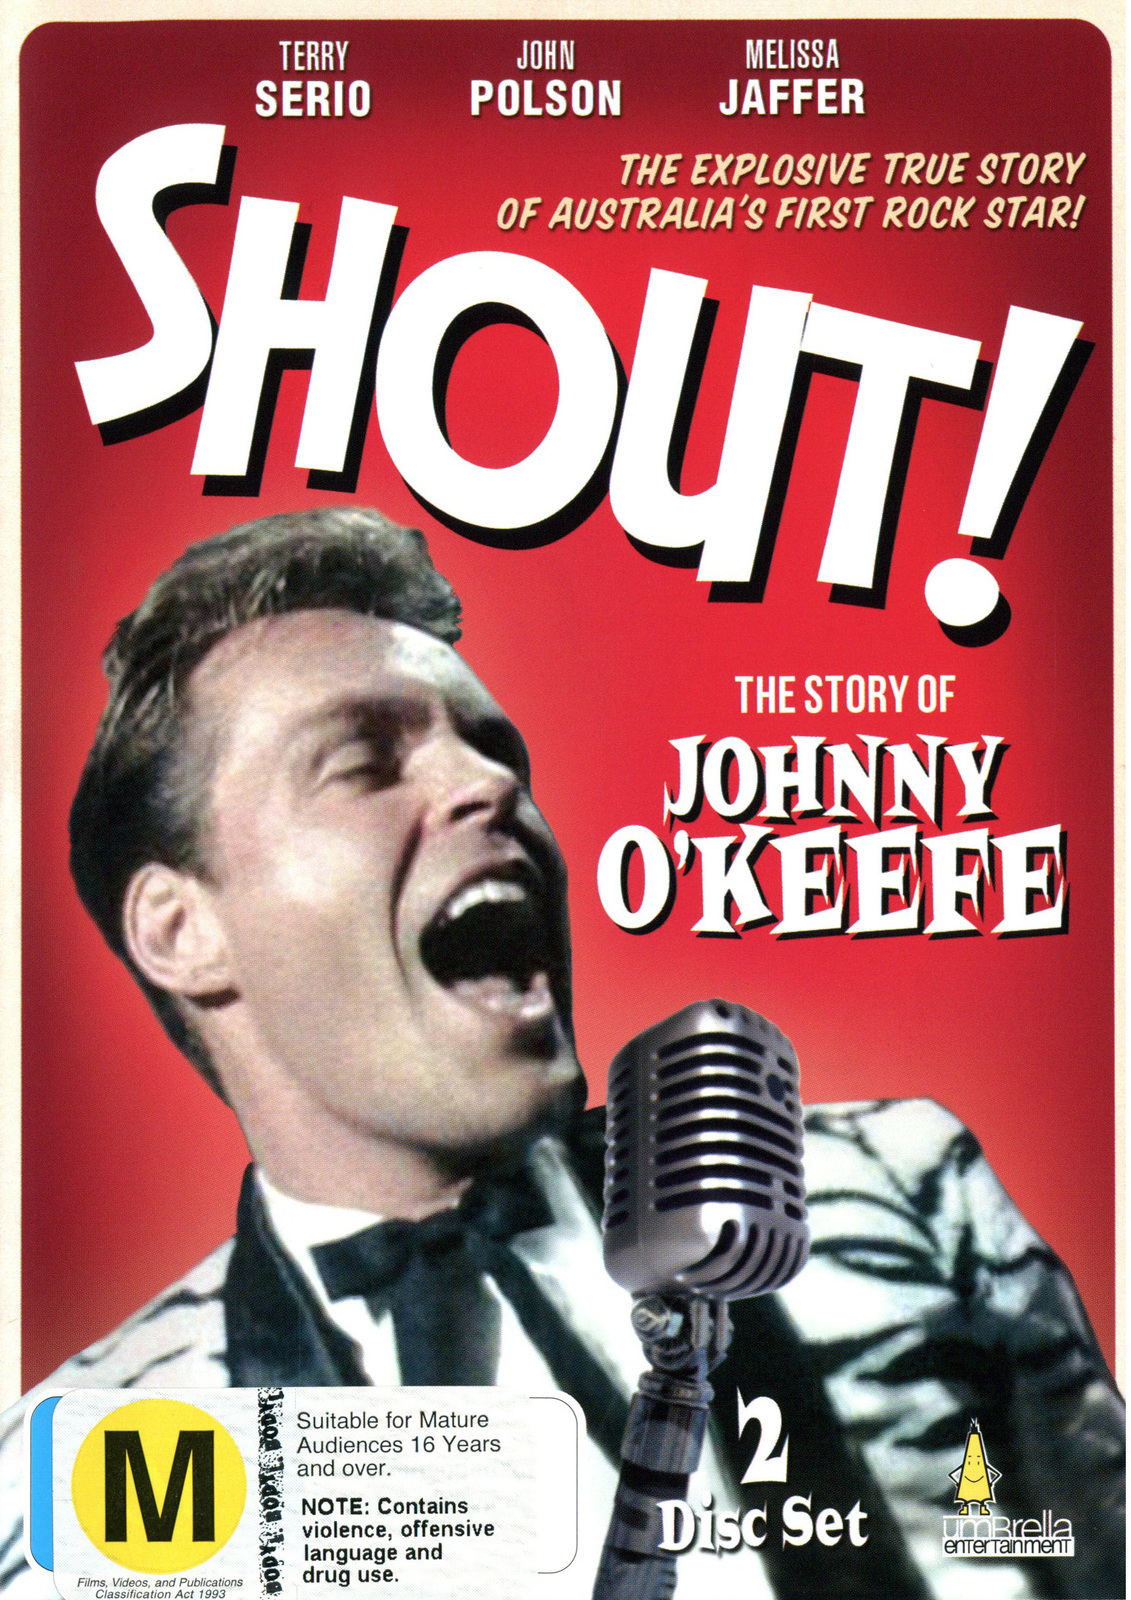 Shout! - The Story Of Johnny O'keefe on DVD image